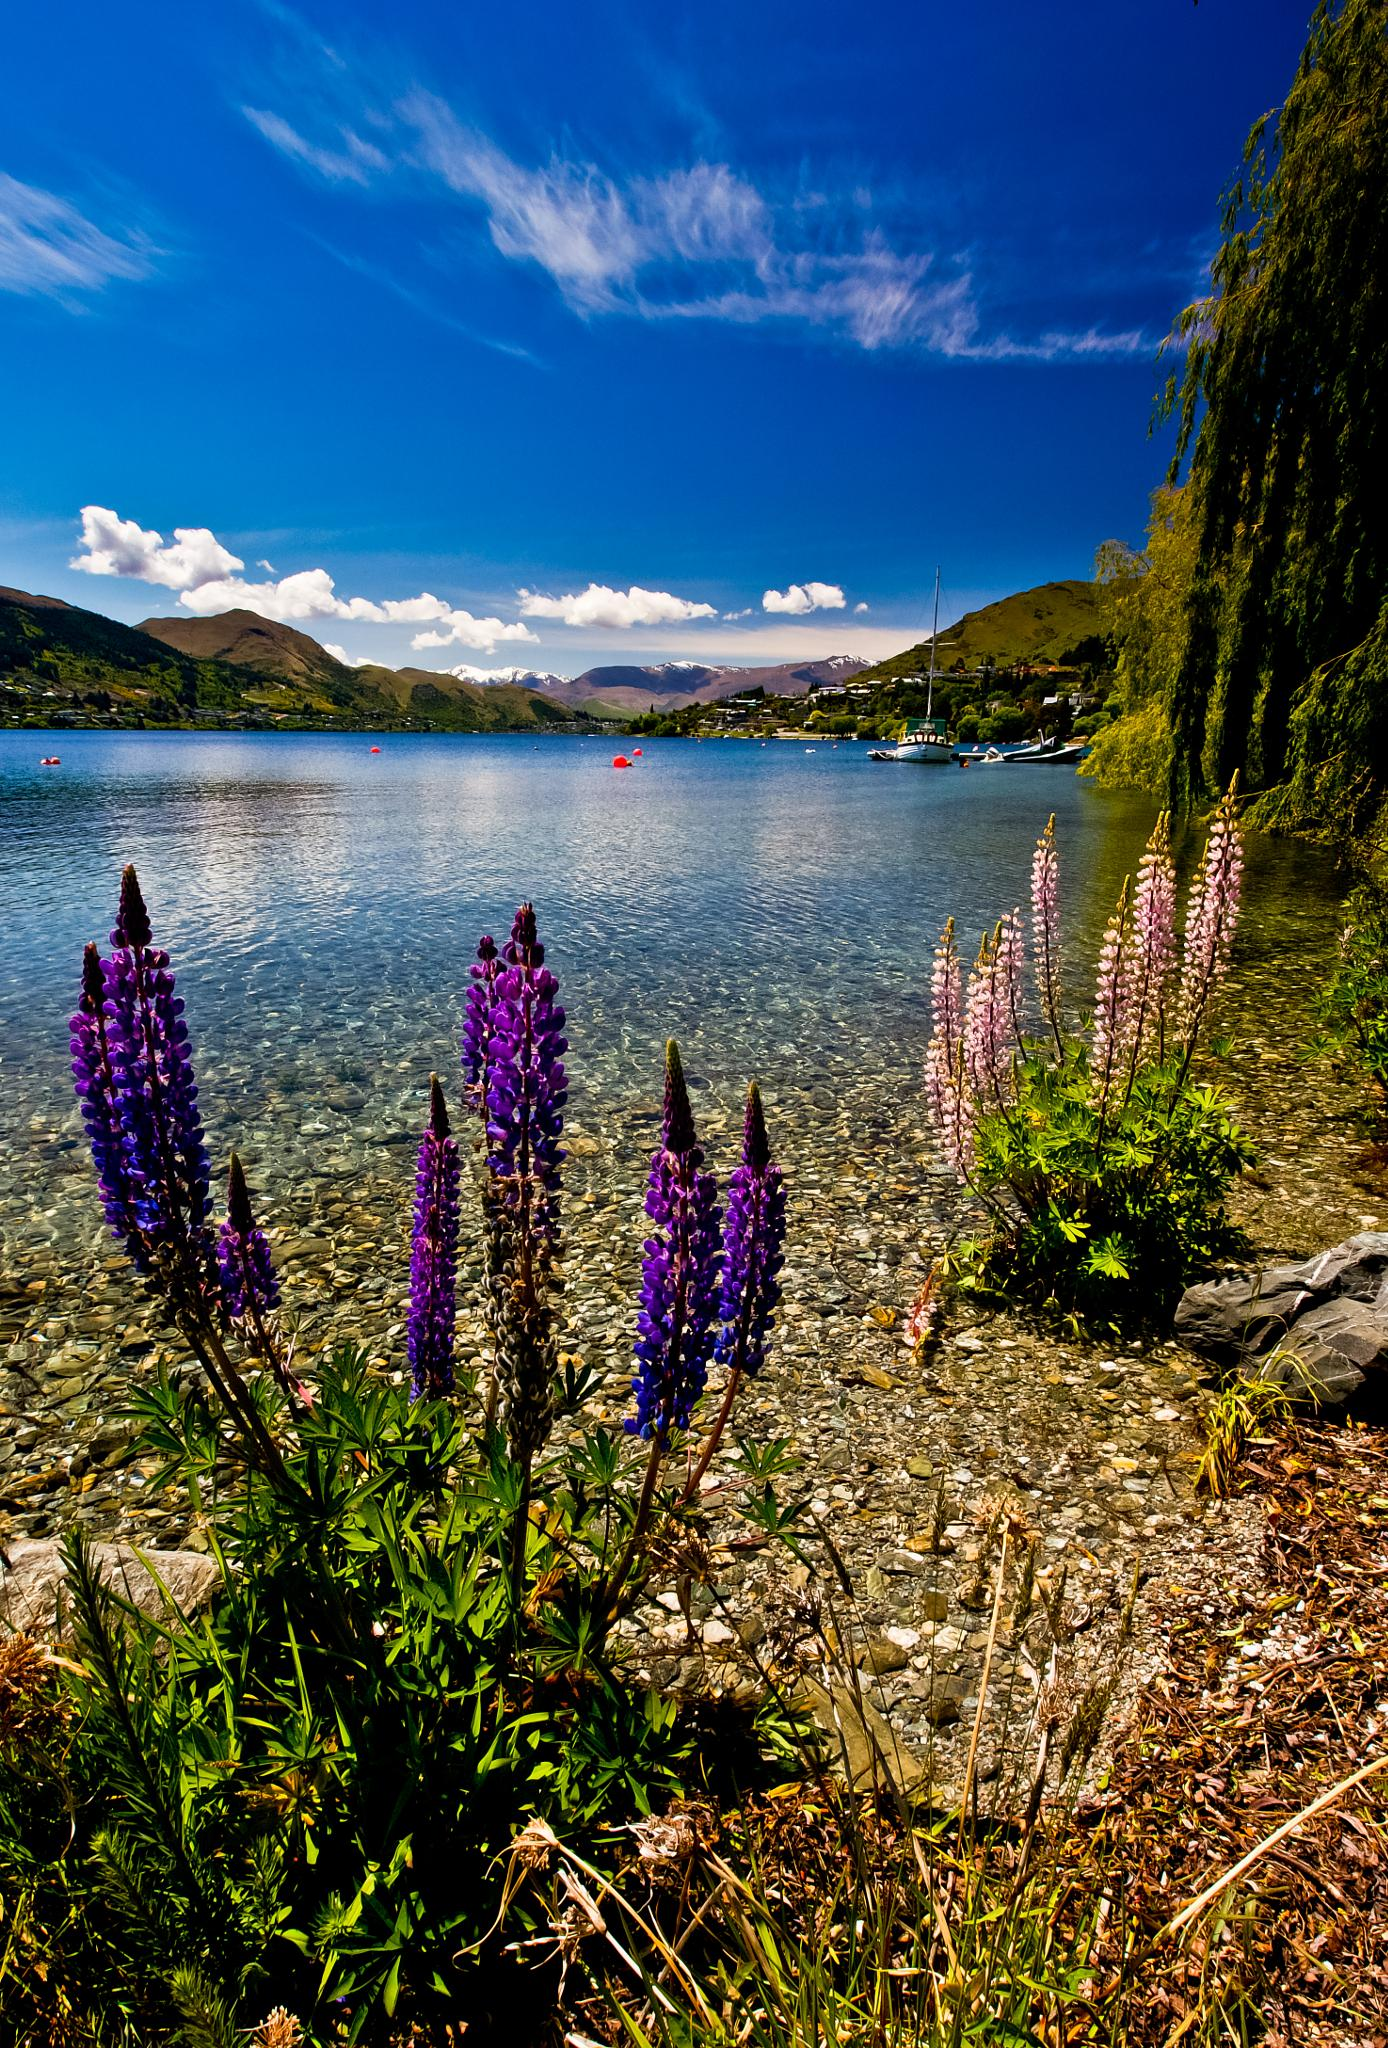 Lupins by Peter Edwardo Vicente.